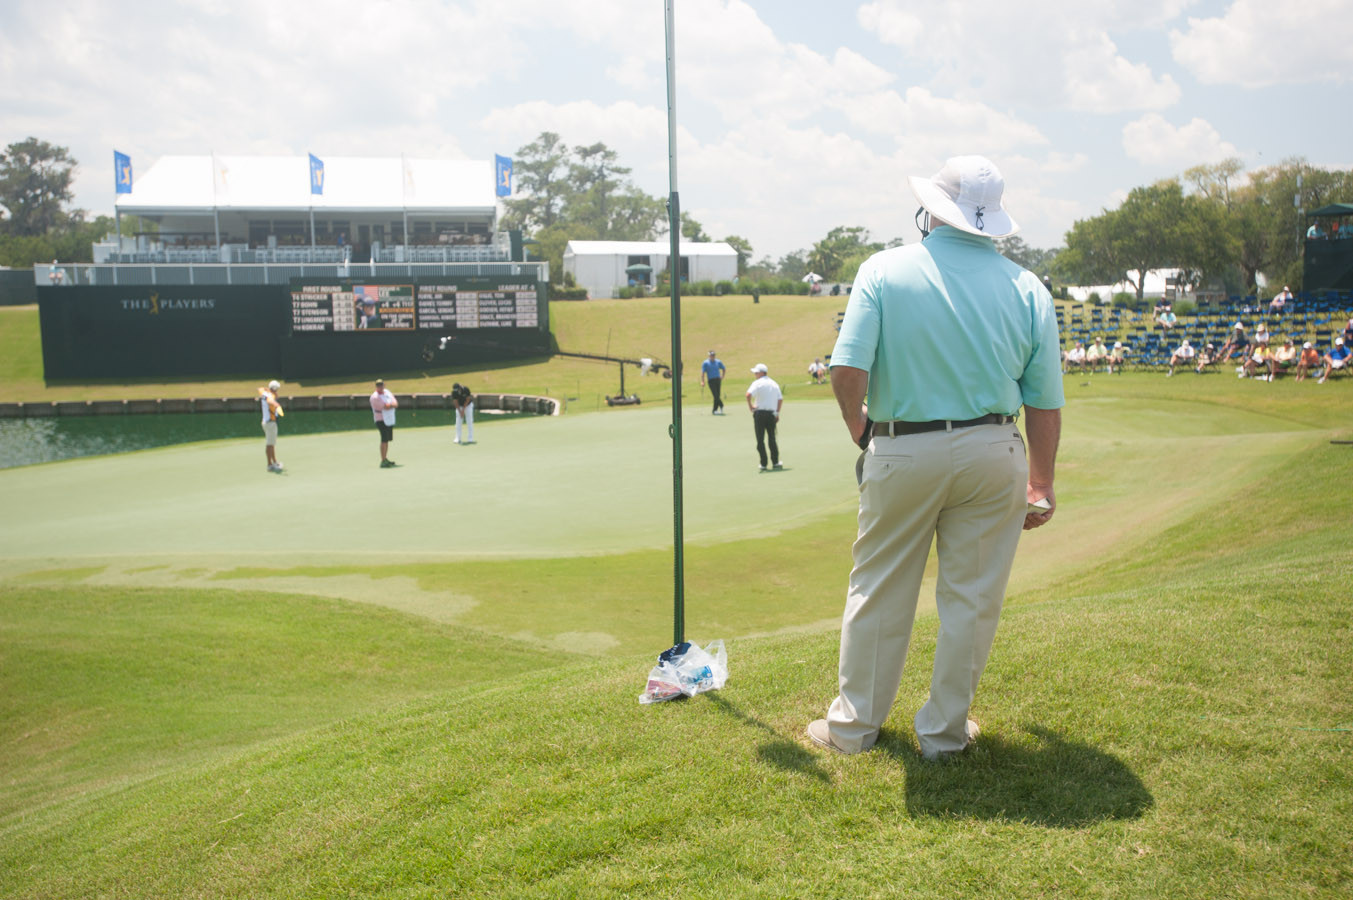 A tour volunteer watches James Driscoll take a practice putt on the 18th green.